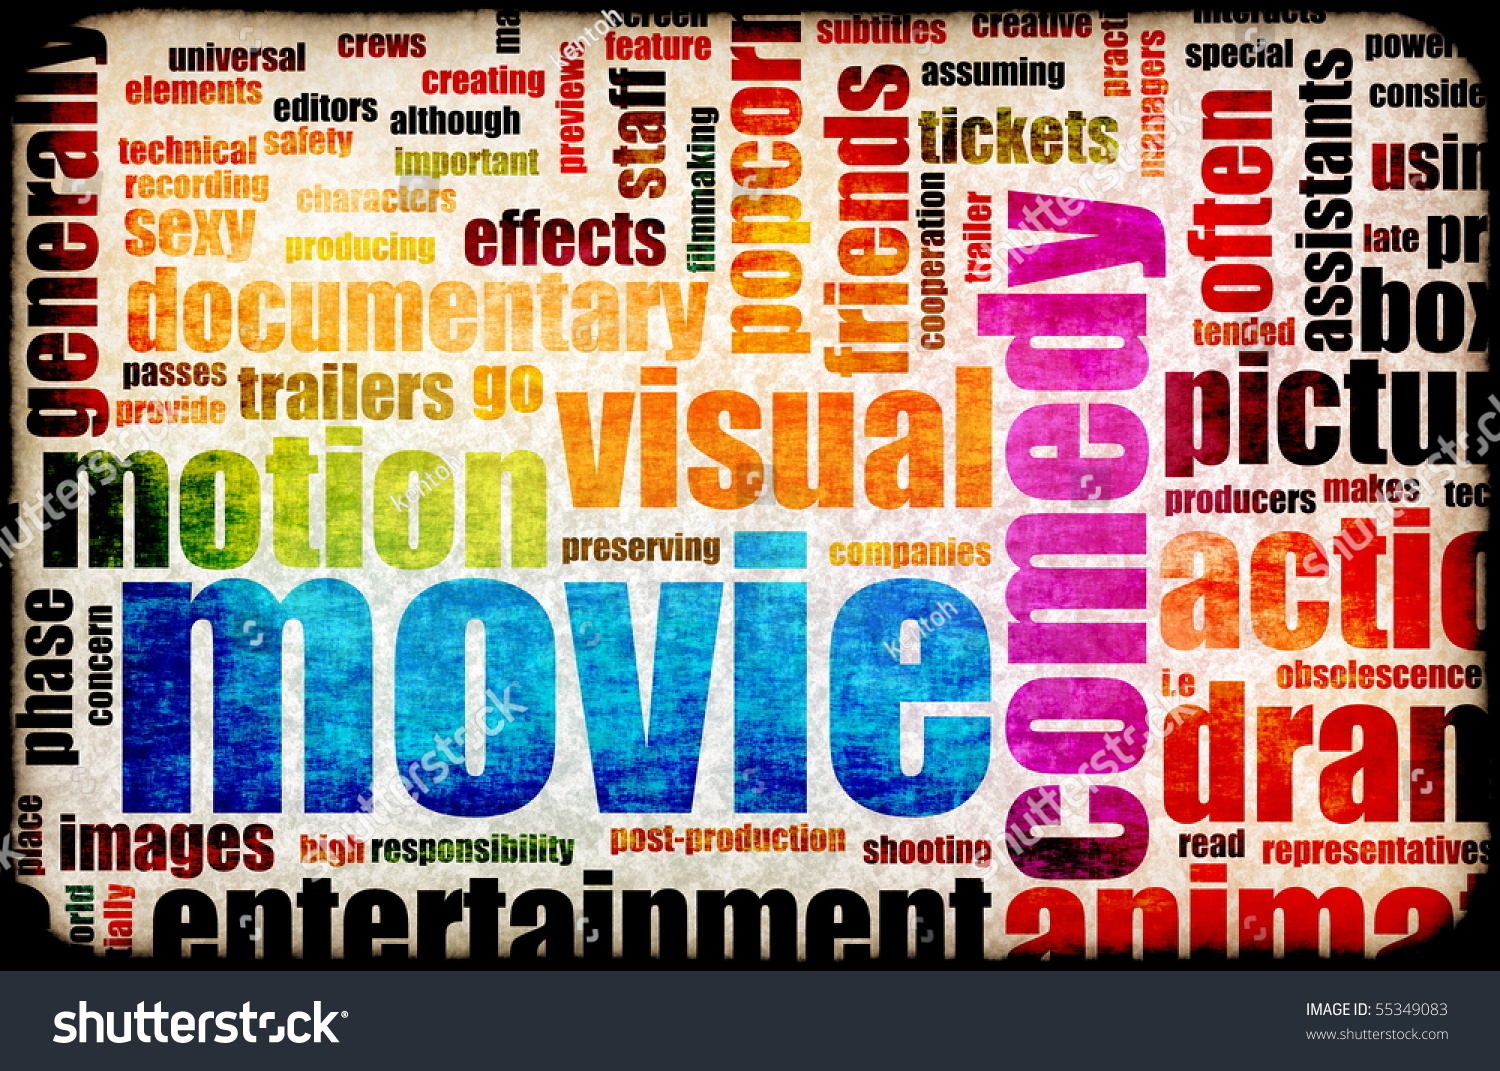 movie poster of film genres vintage background stock photo